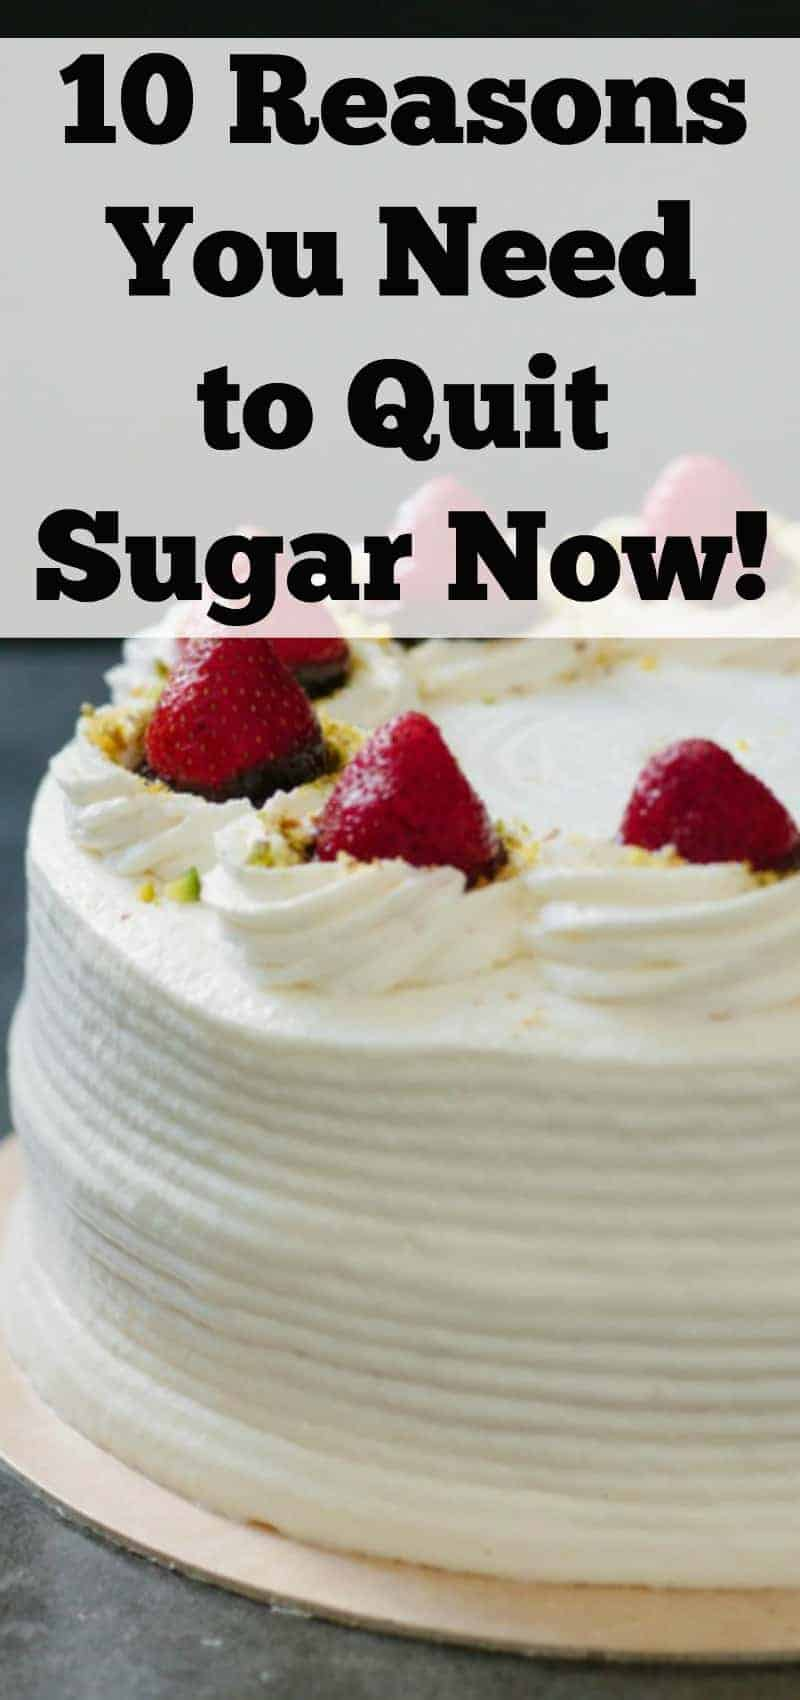 10 reasons you need to quit sugar now